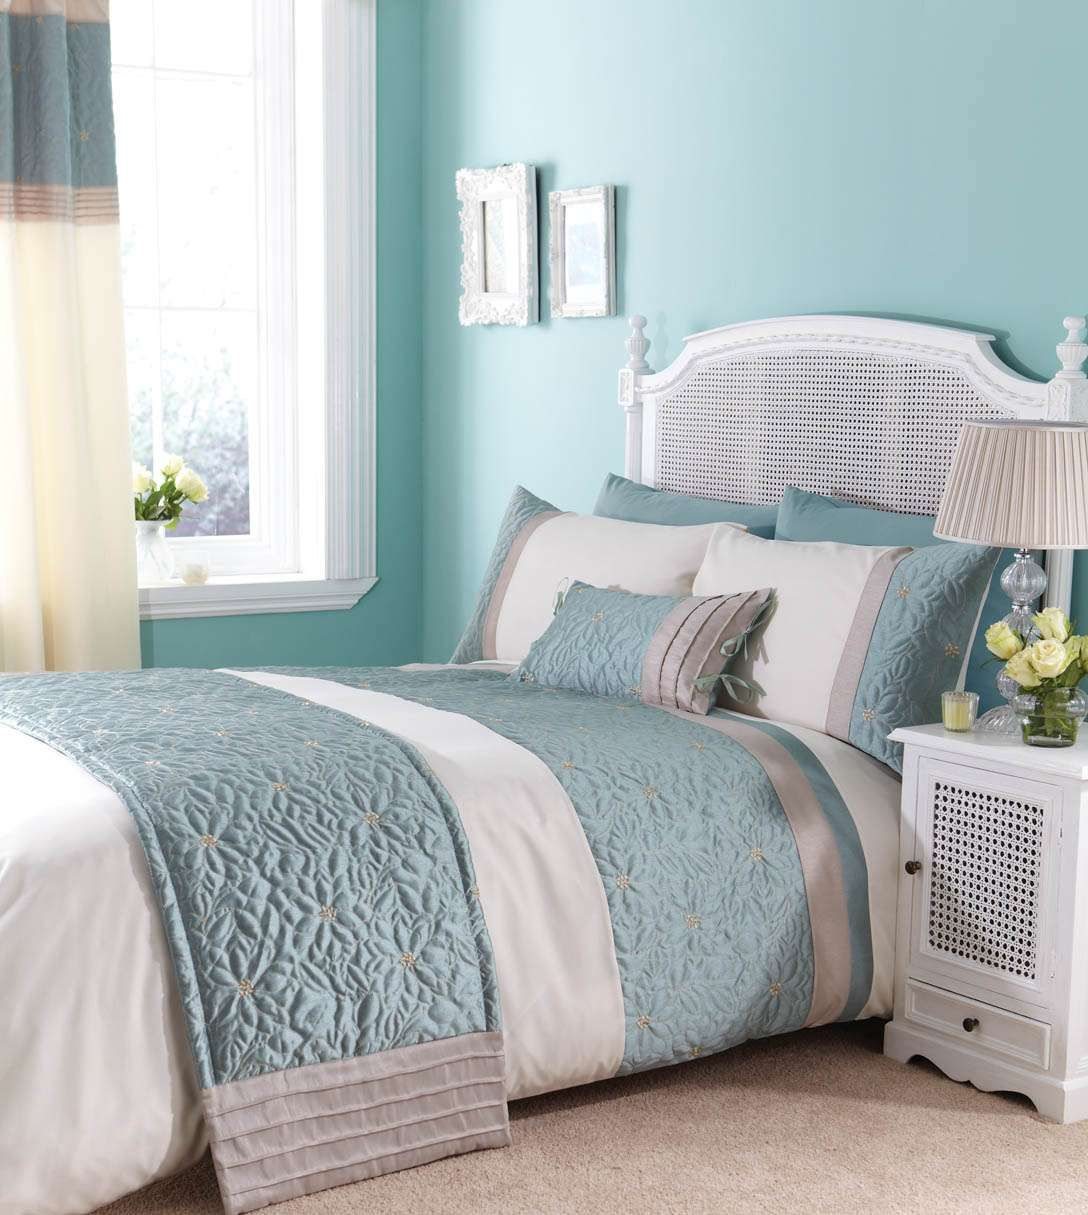 Duck Egg Blue! Love The Big Window, Bedding And Bedside